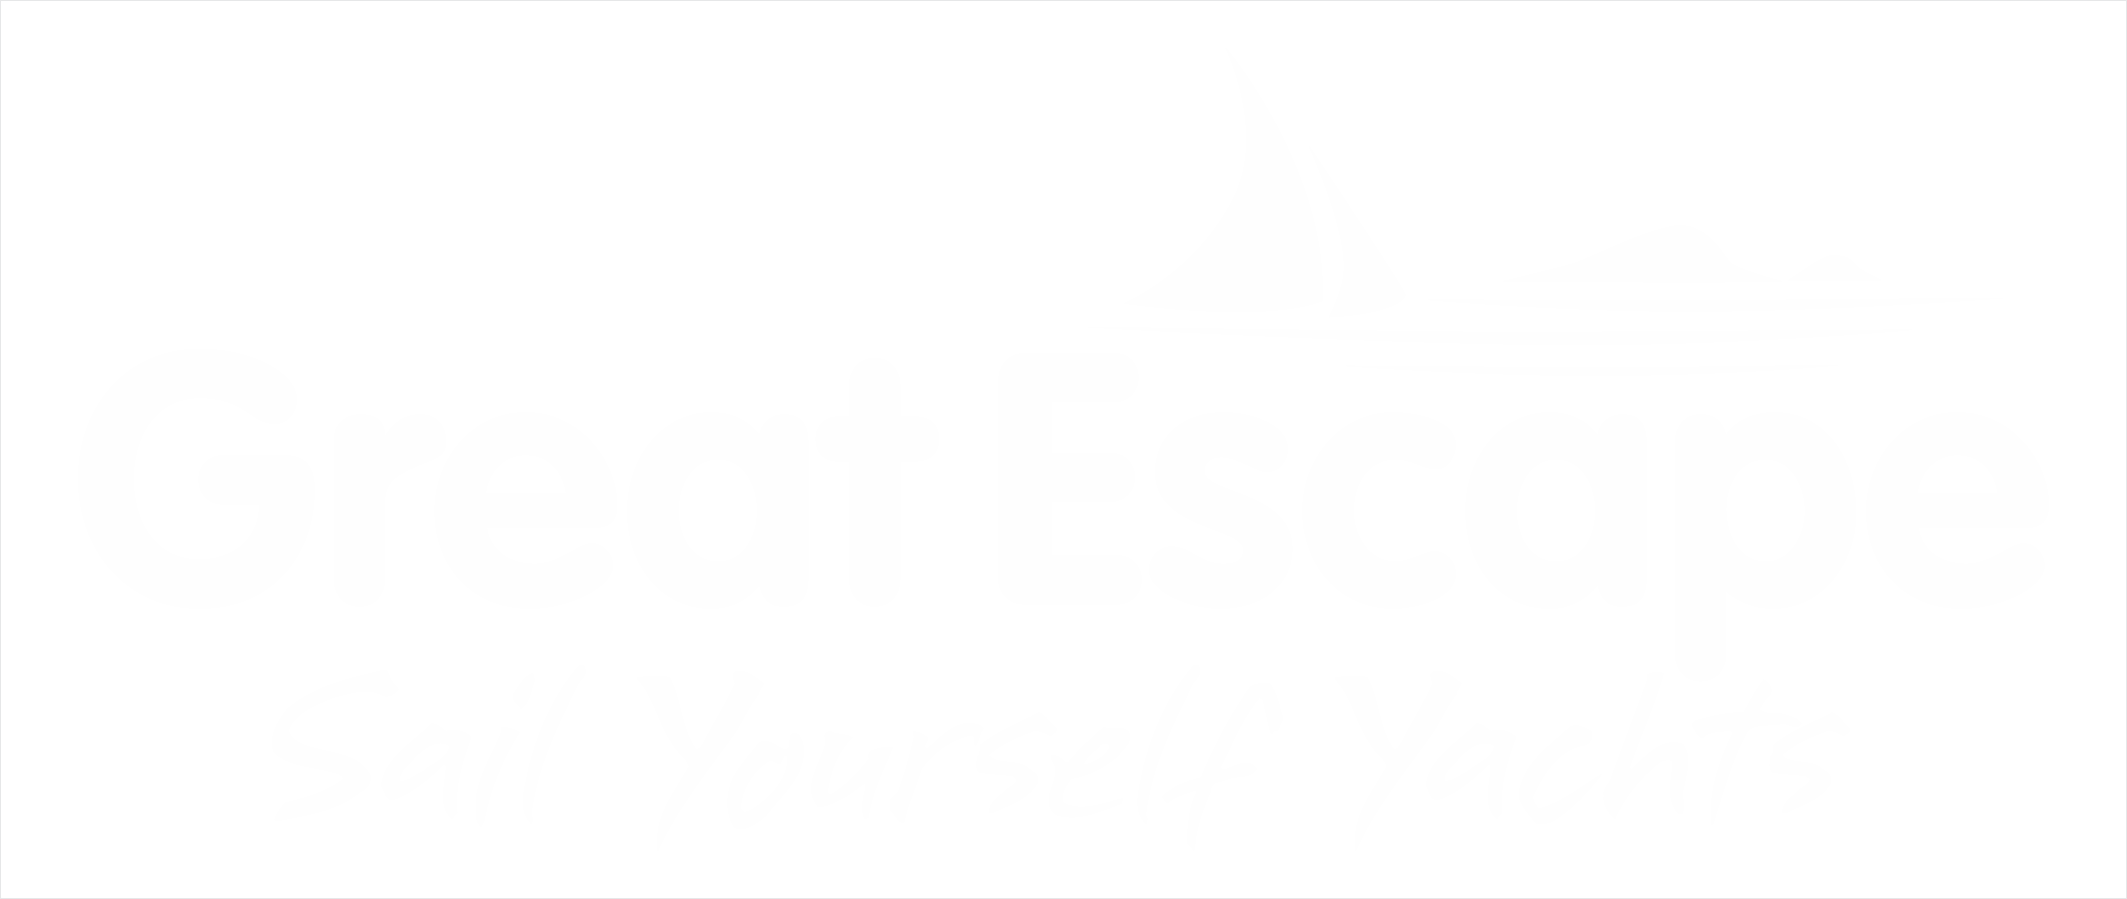 Great Escape Sail Yourself Yachts